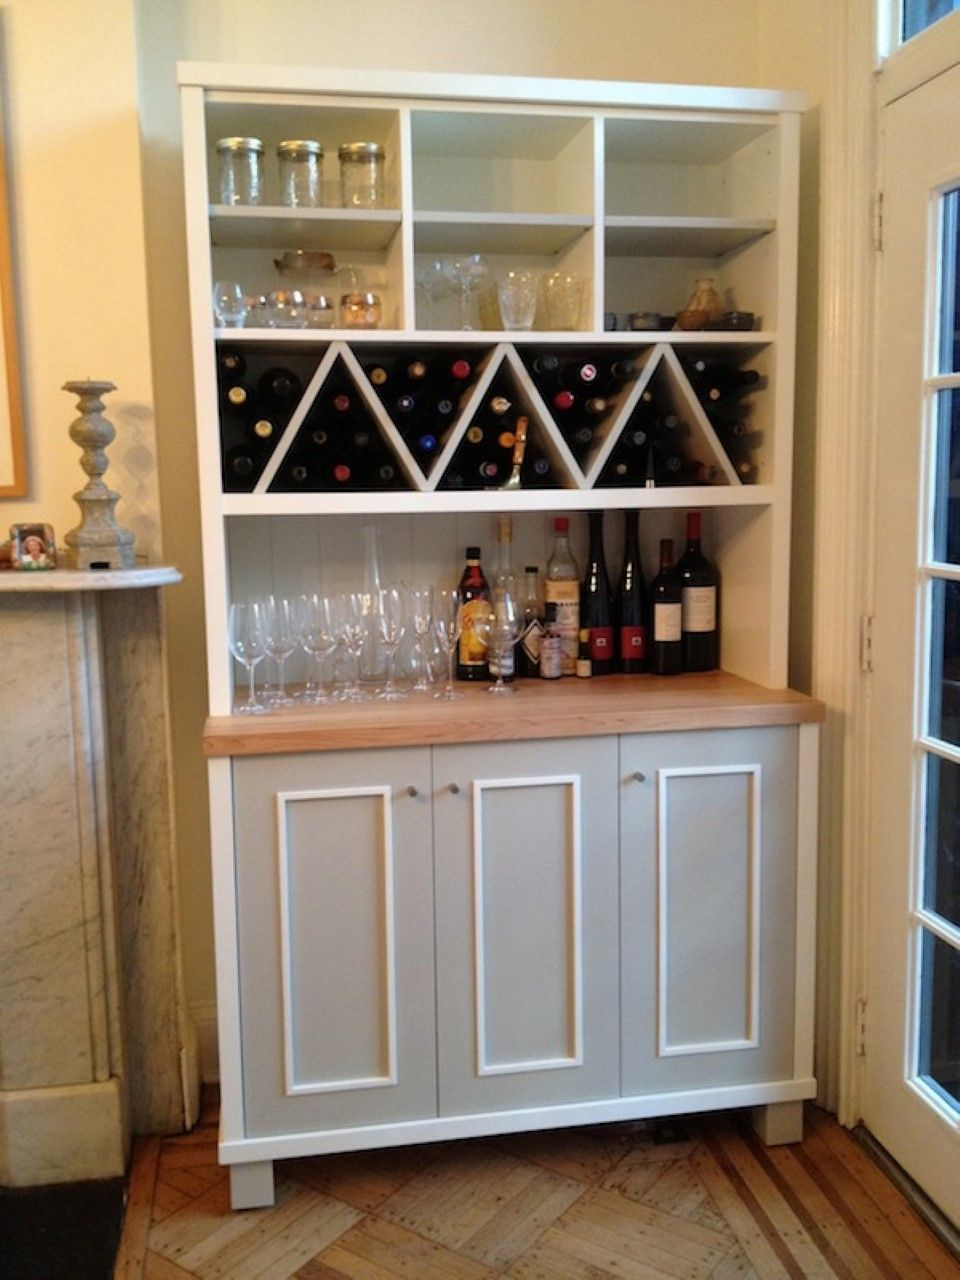 Zigzag Shaped Wine Racks with Multi Purposes Kitchen Wall